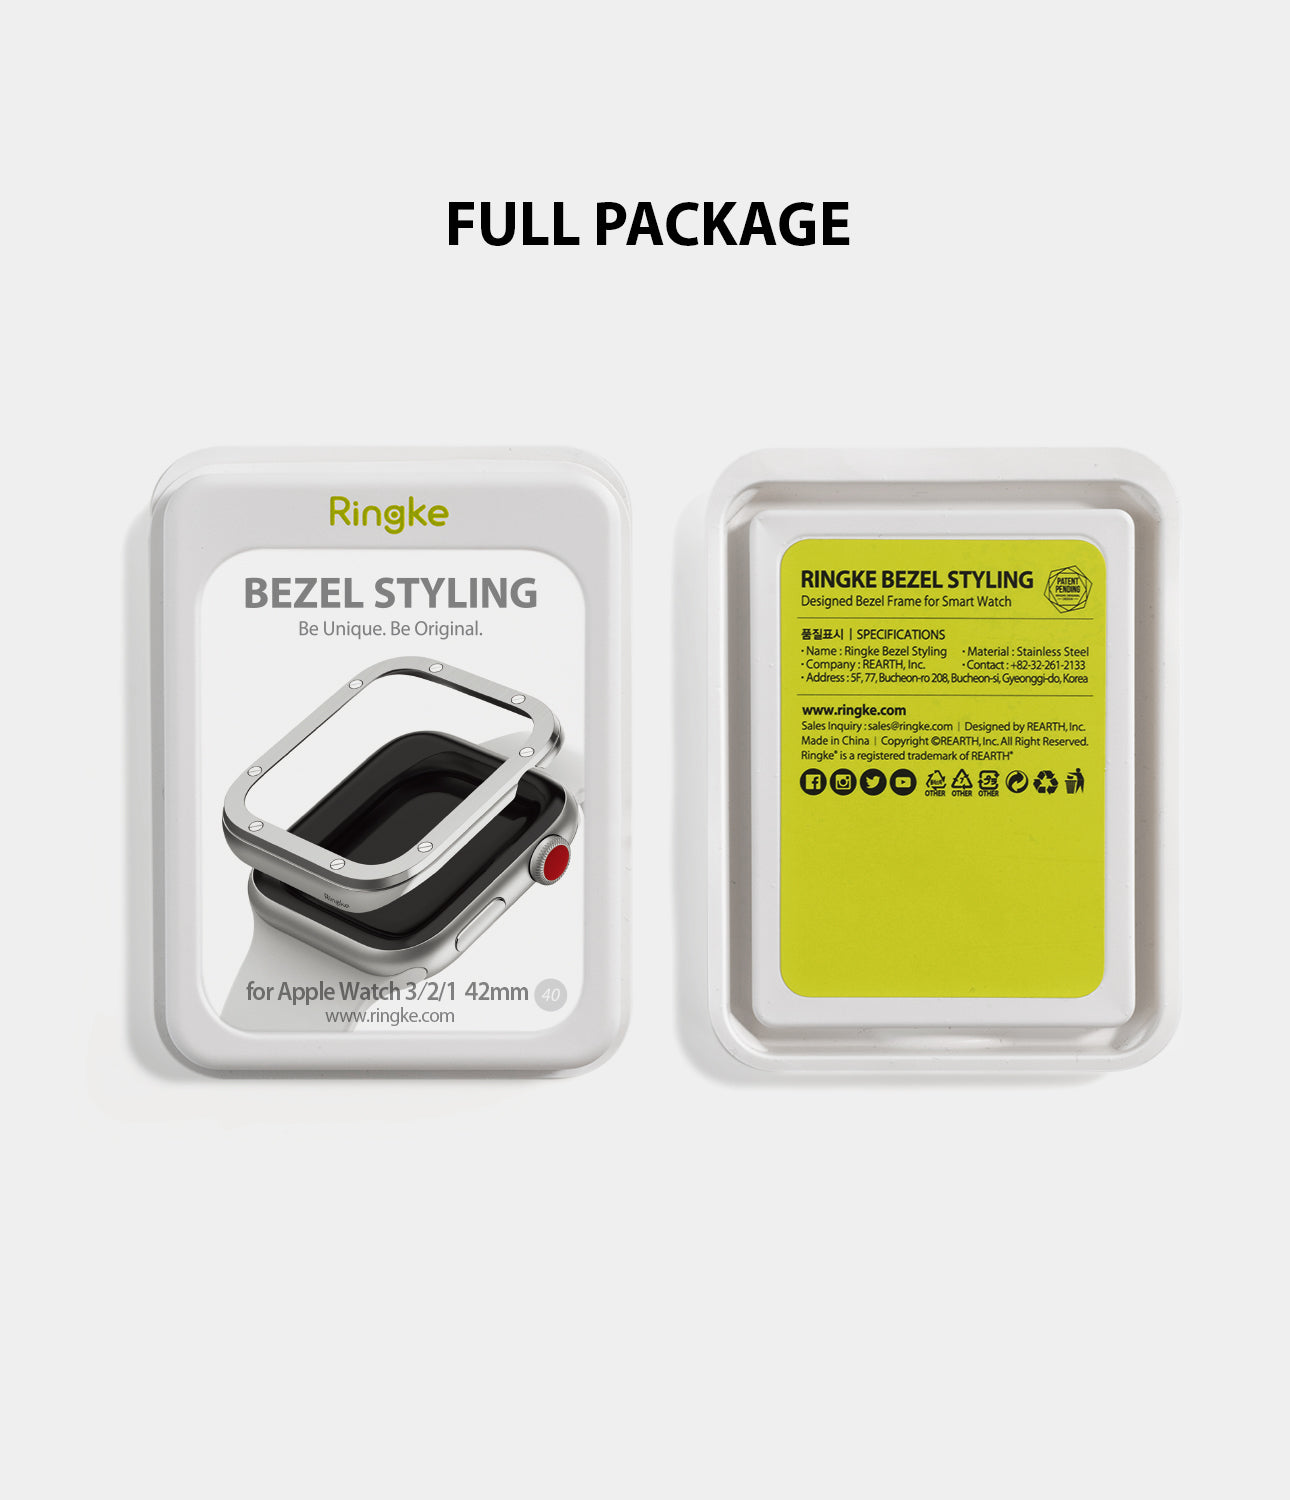 apple watch 3 2 1 42mm case ringke bezel styling stainless steel frame cover 42-40 full package